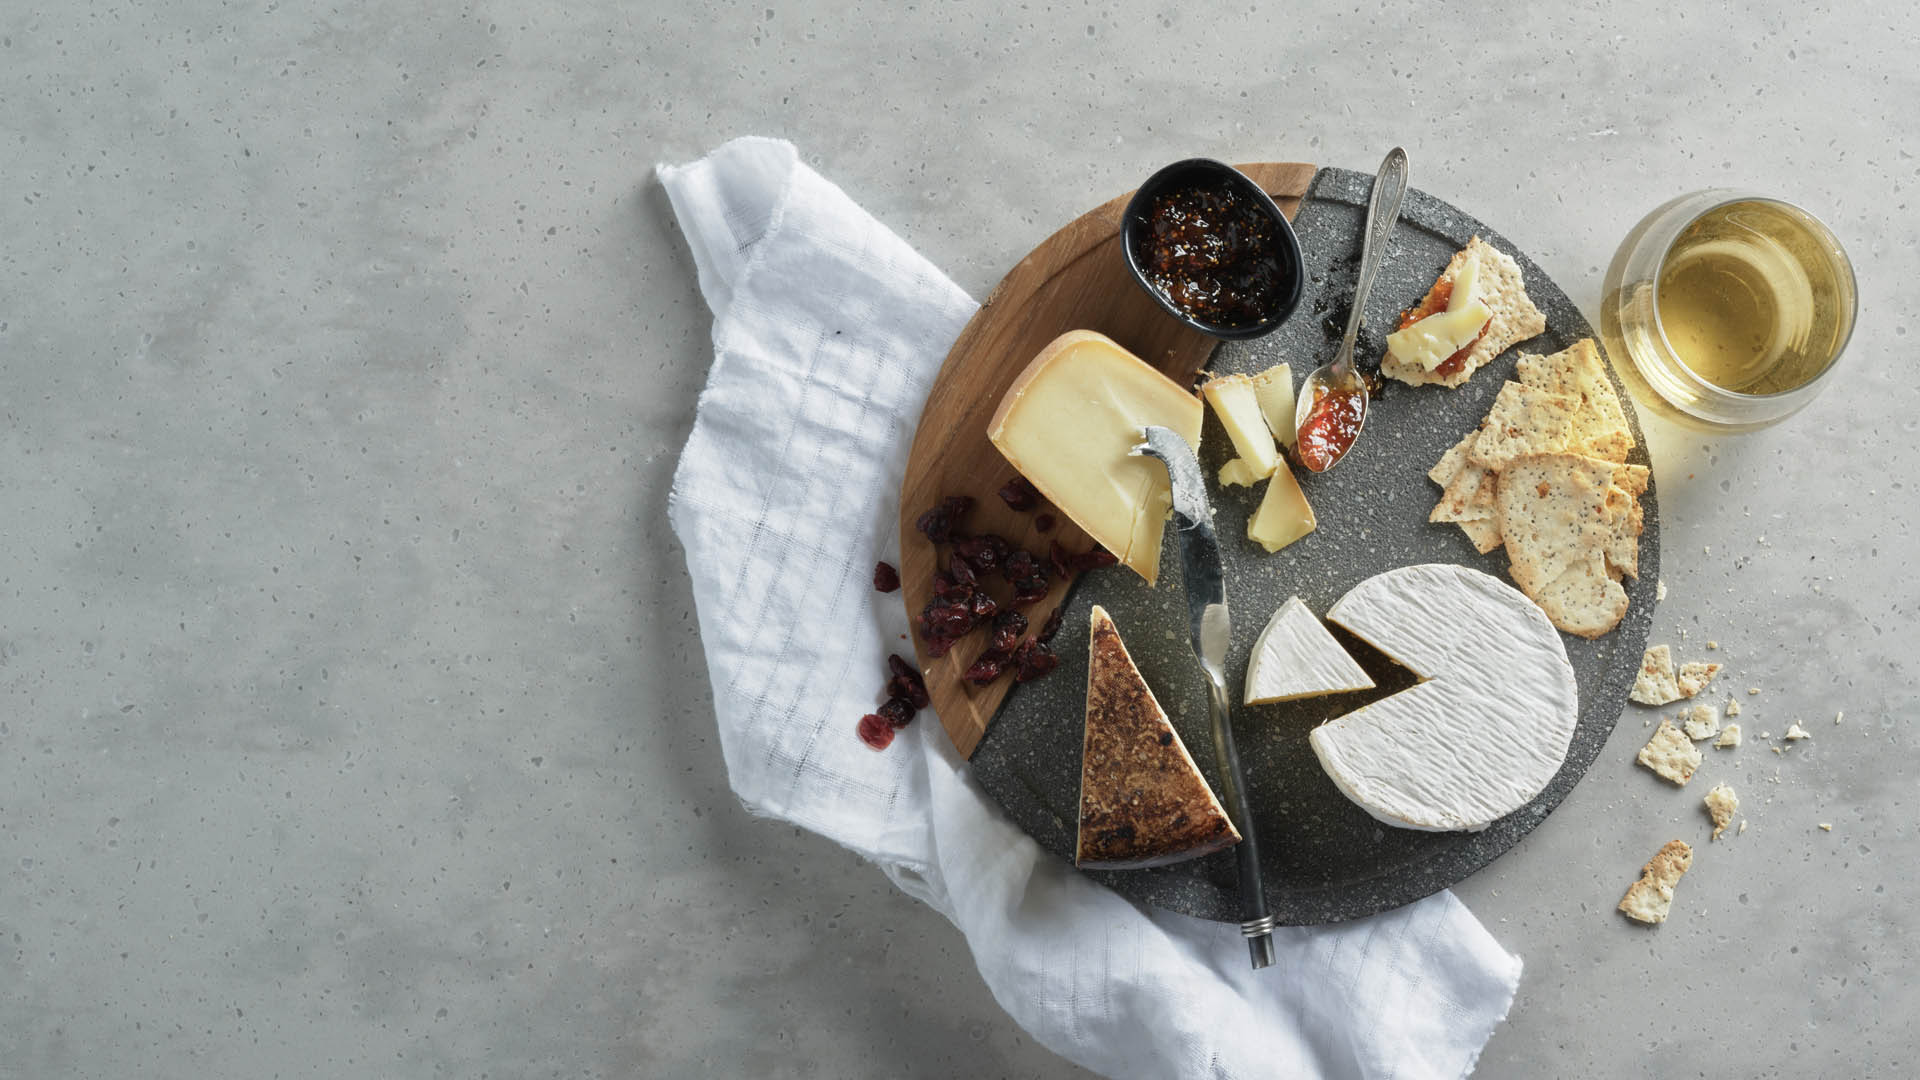 A round wooden board with three different cheeses, crackers, jams on a marble countertop with a glass of white wine on the side.